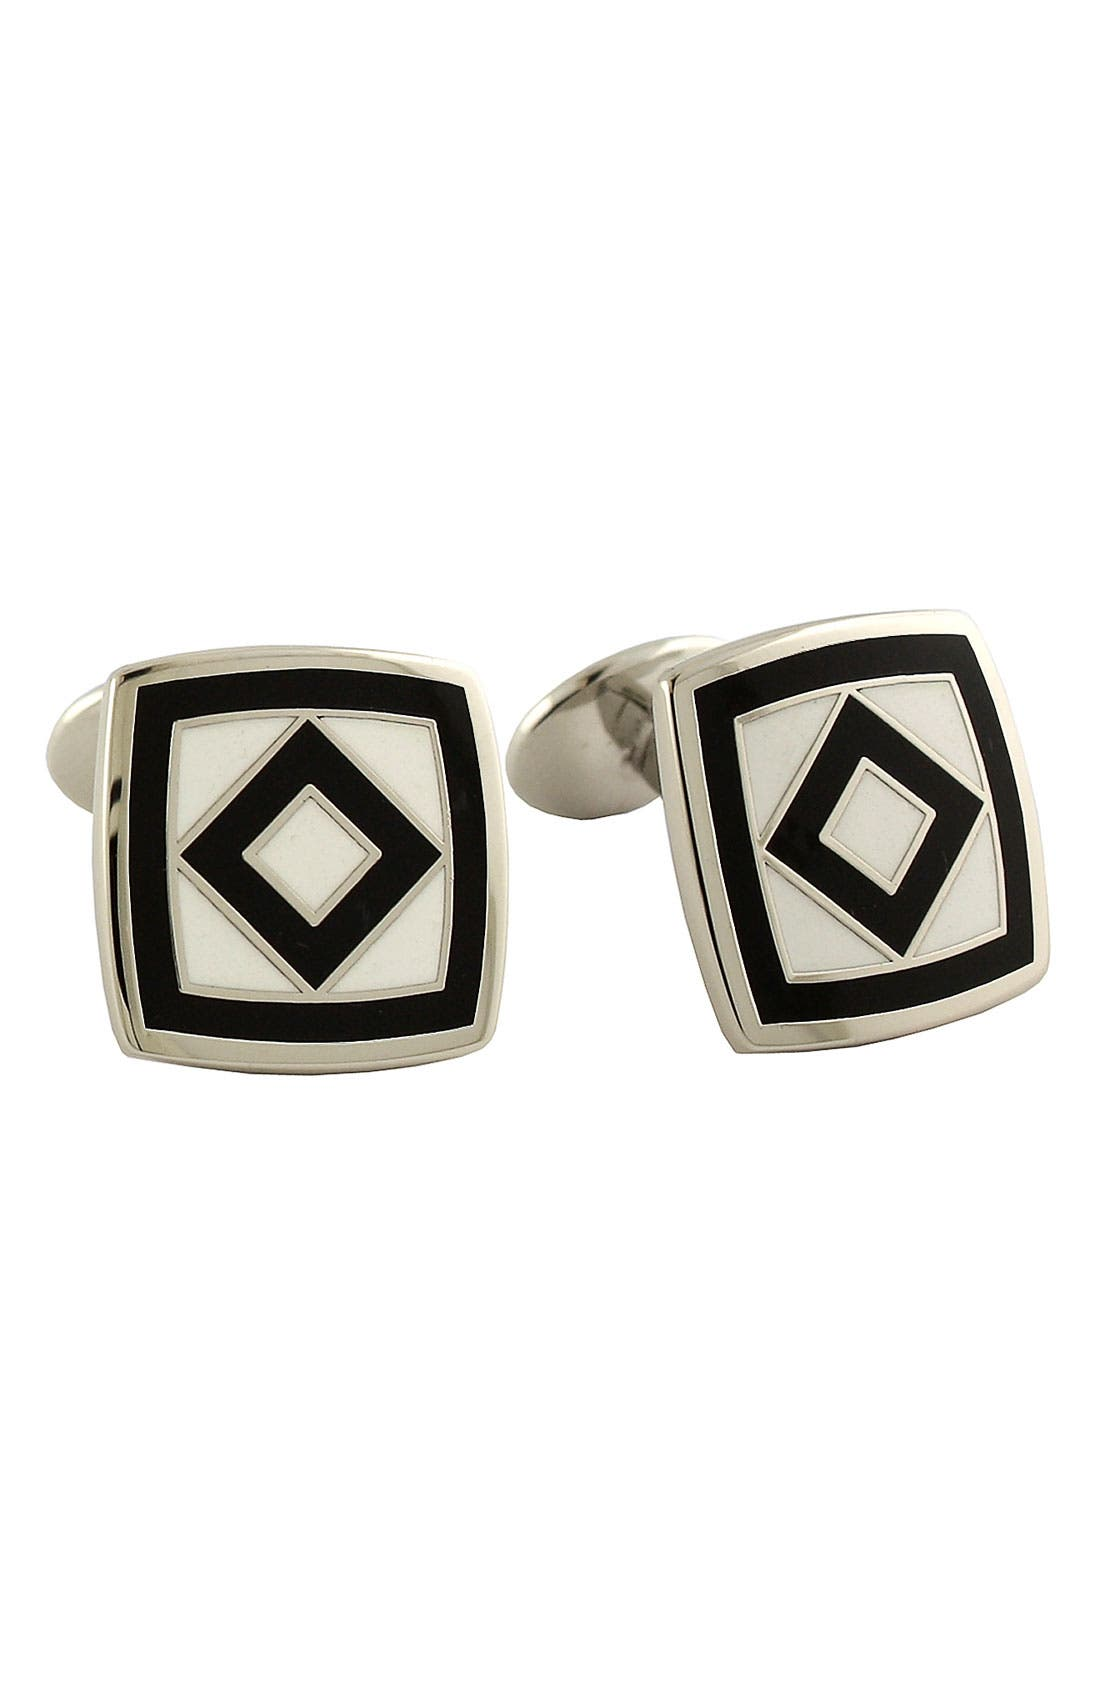 Alternate Image 1 Selected - David Donahue 'Diamond Square' Cuff Links